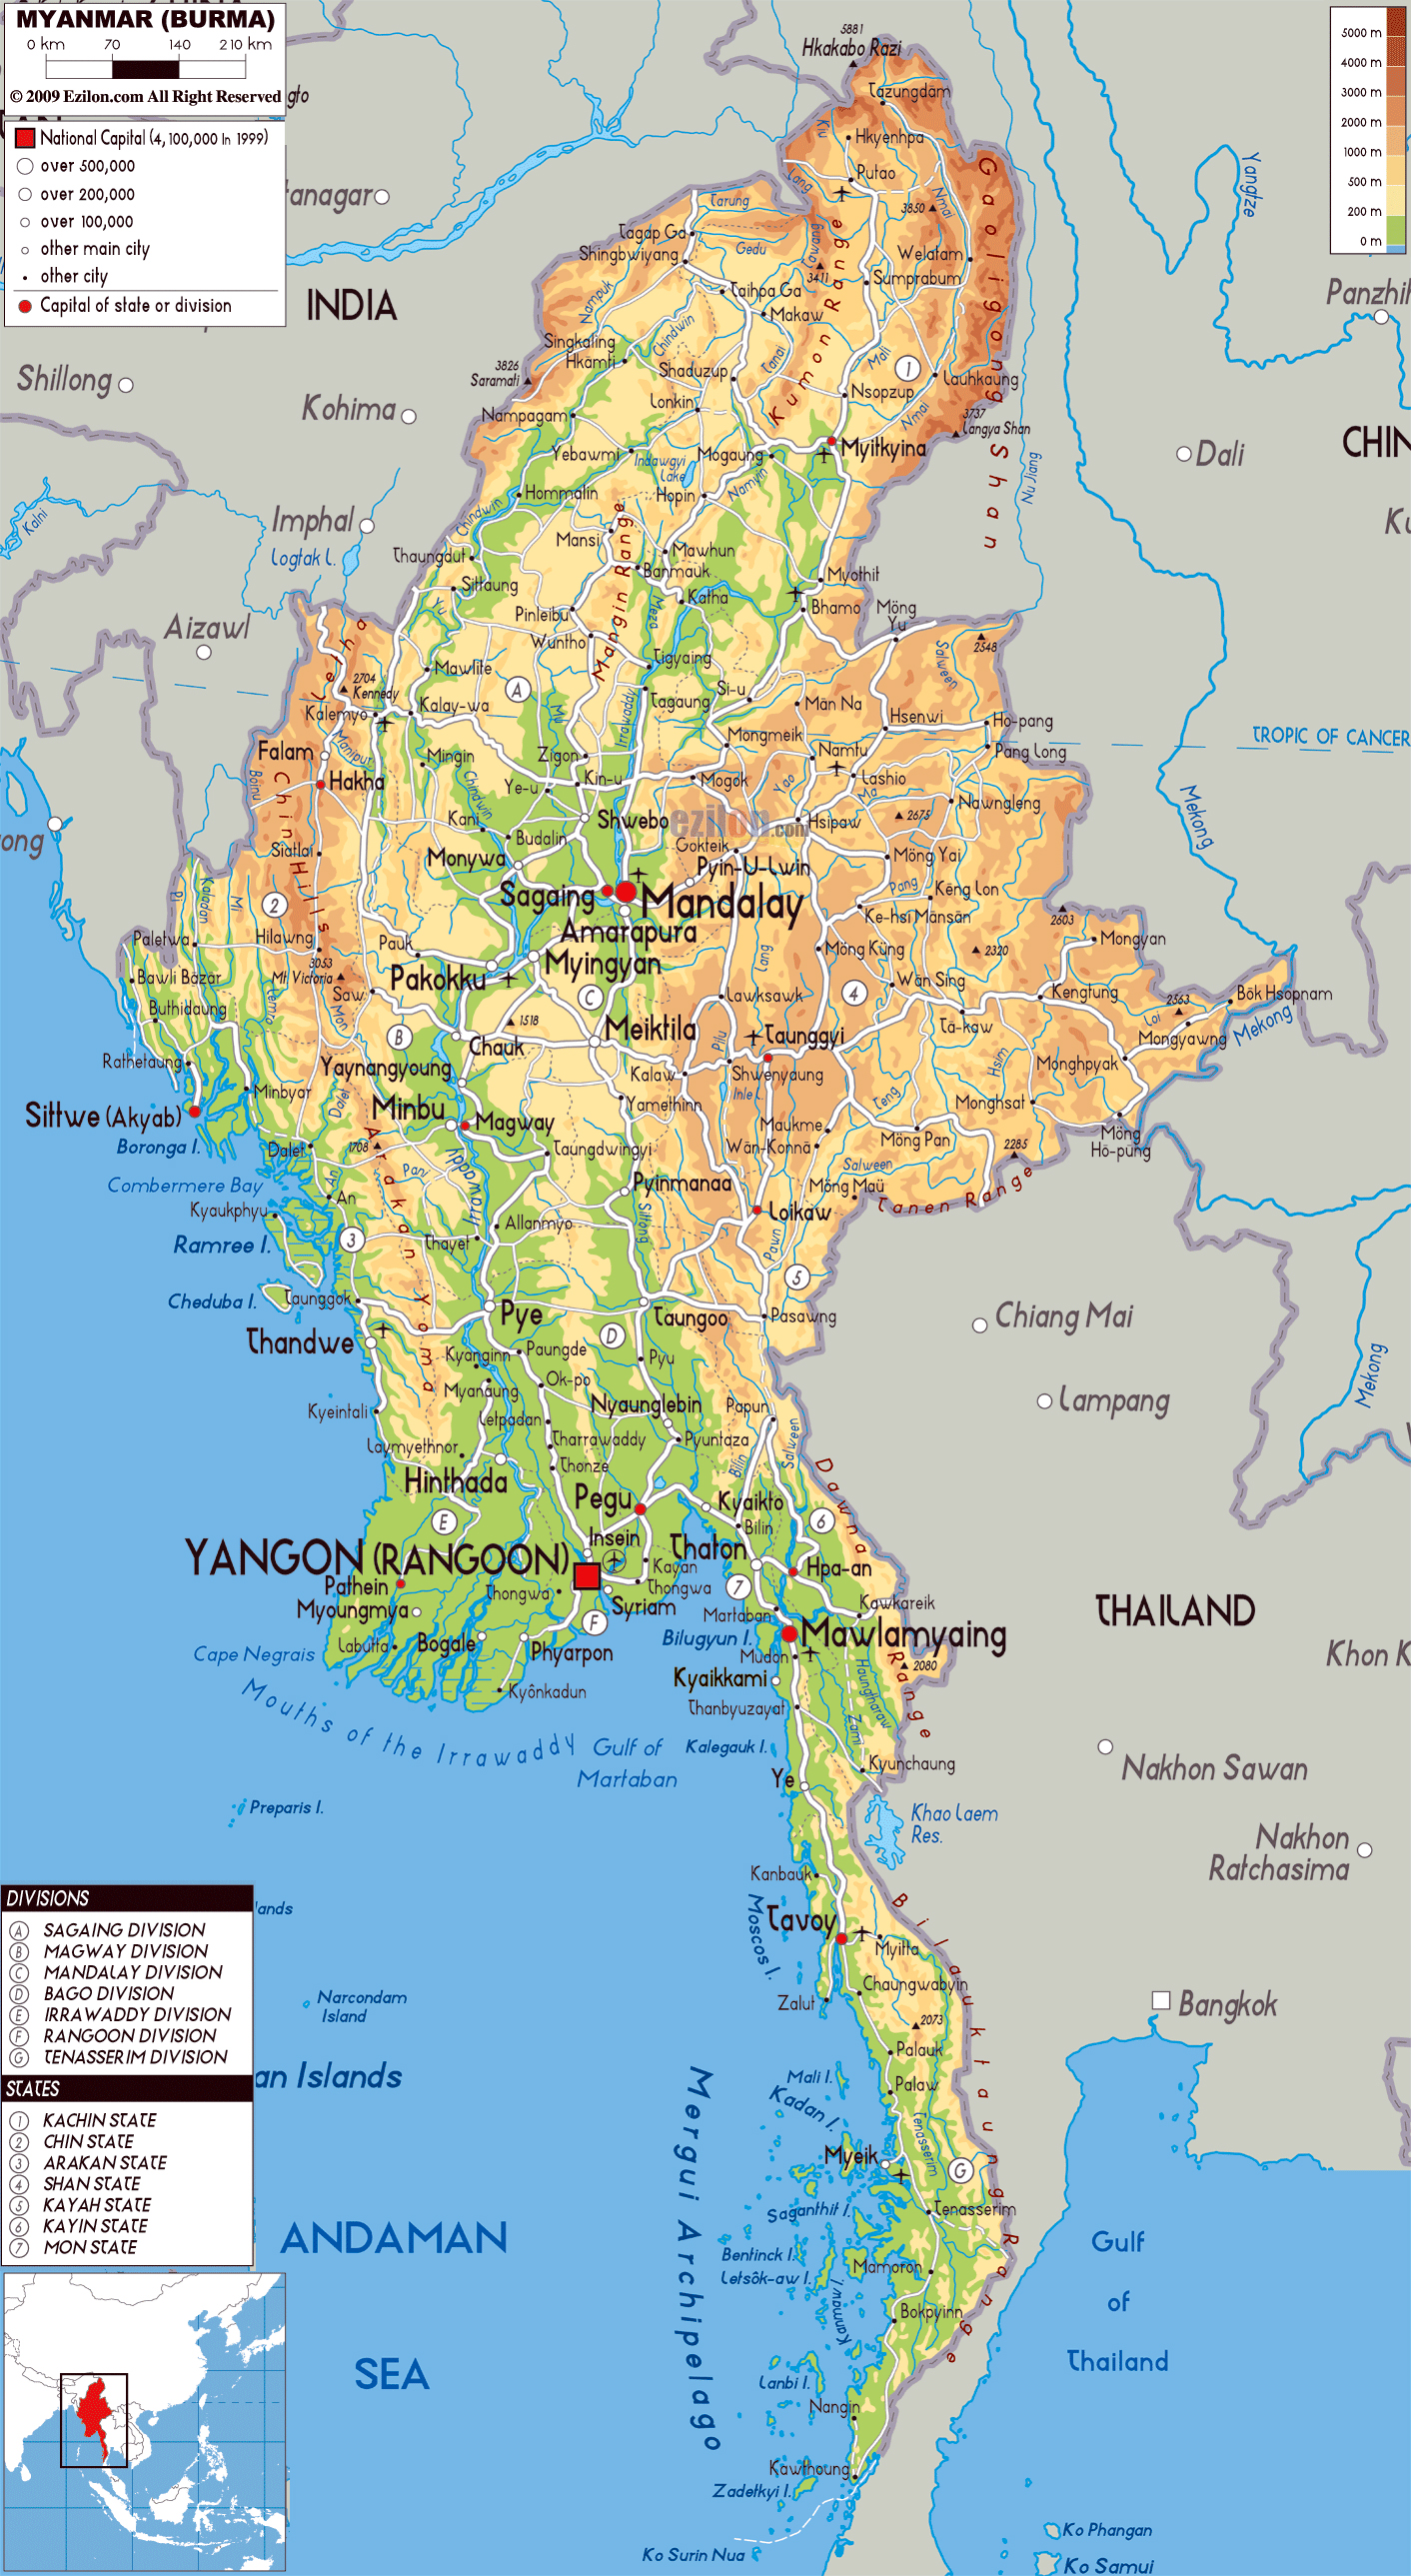 Maps of myanmar burma detailed map of myanmar in english large physical map of myanmar with roads cities and airports gumiabroncs Image collections